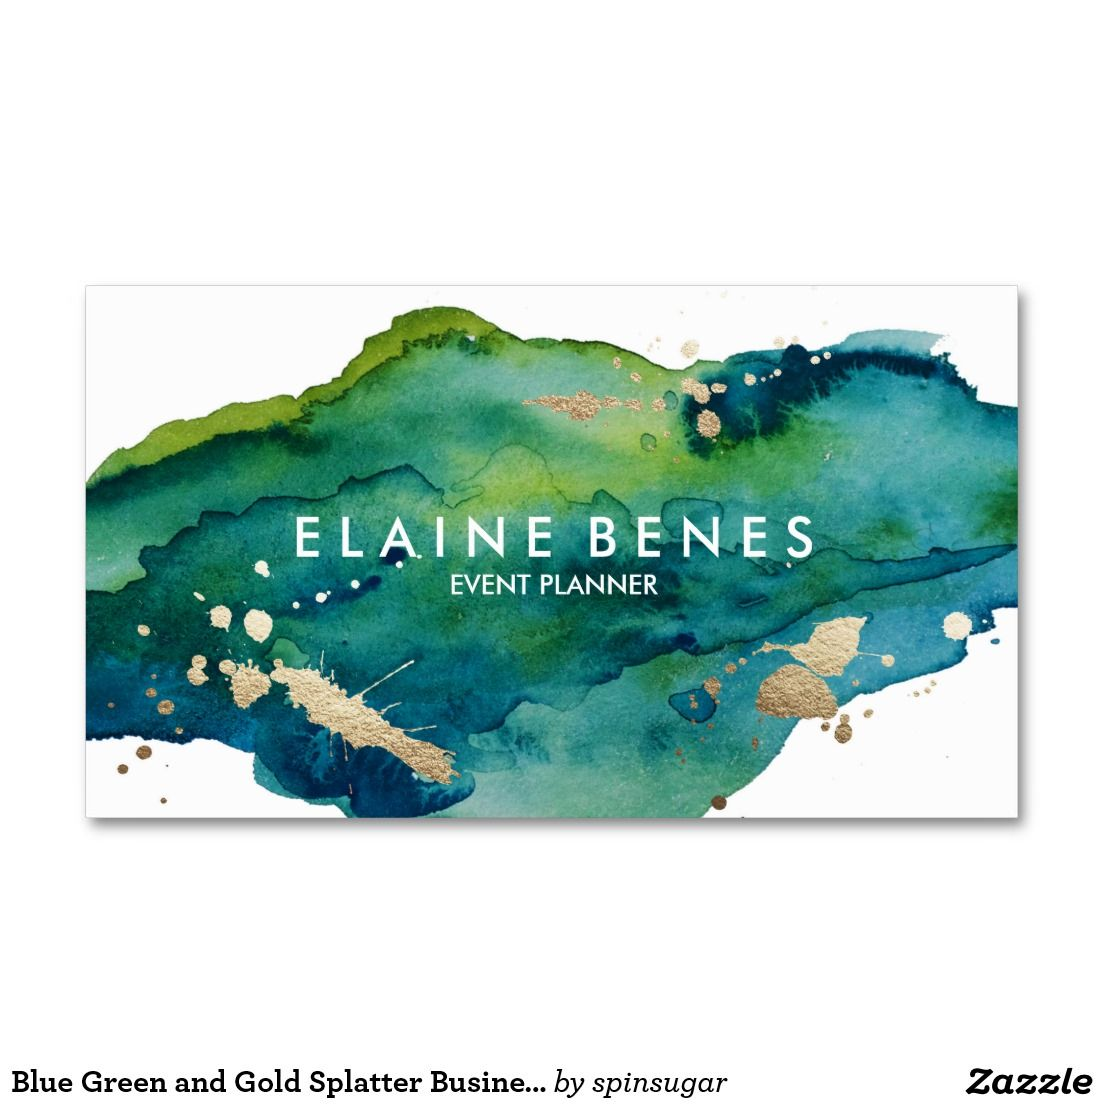 Blue green and gold splatter business card business cards blue blue green and gold splatter business card magicingreecefo Images